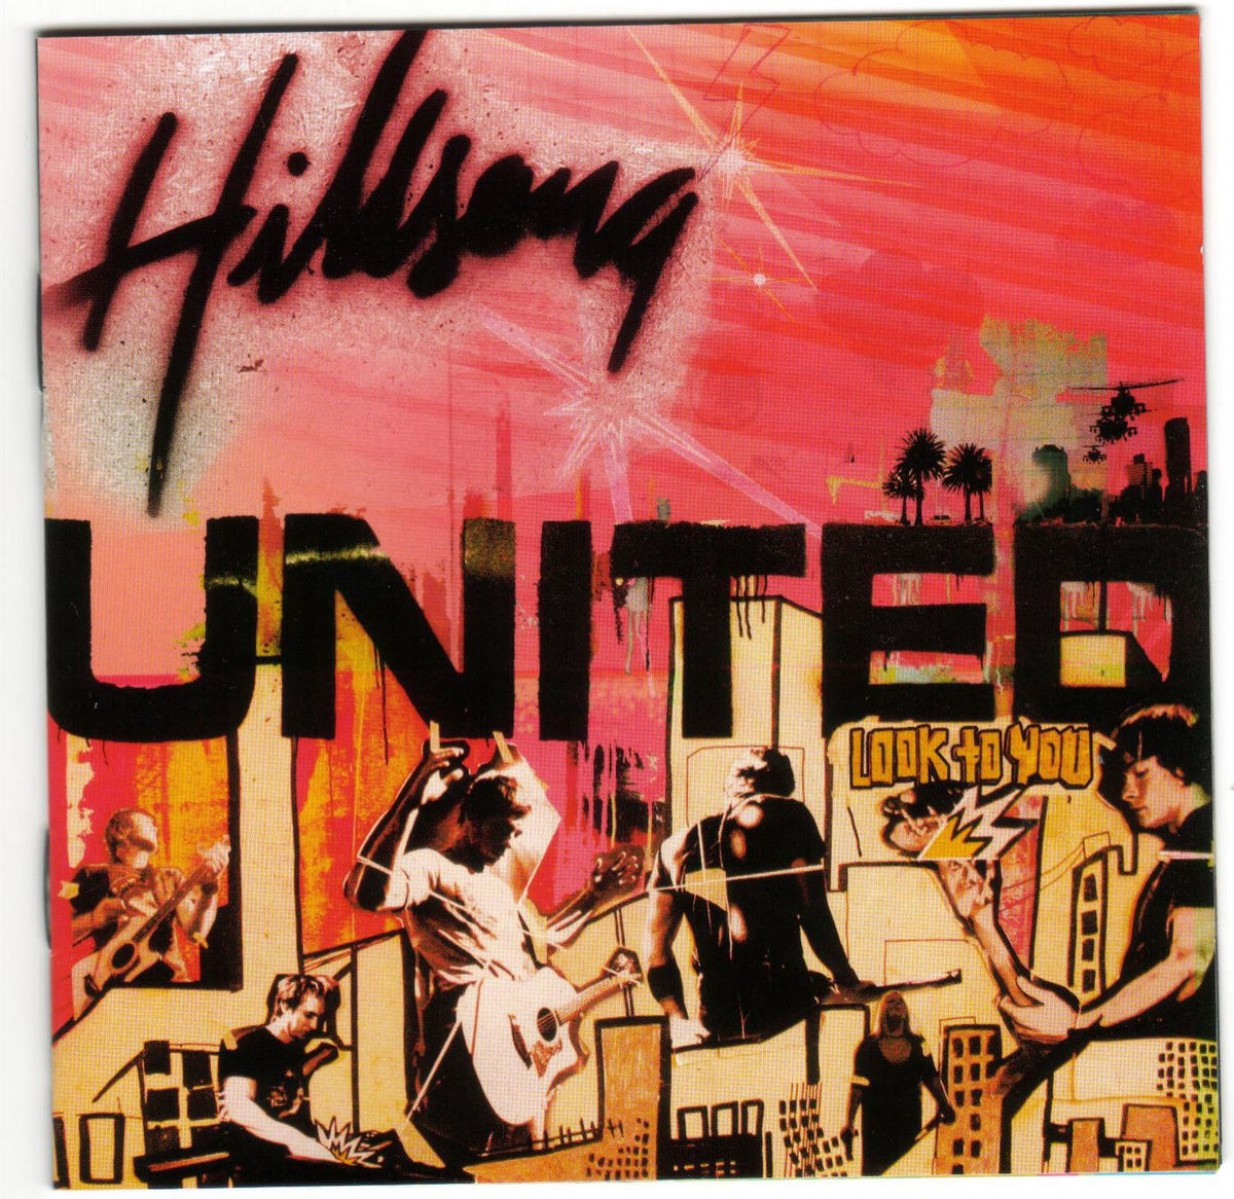 Hillsong United - Look to You (Split Tracks) CD - WHS/ACD  /184C/